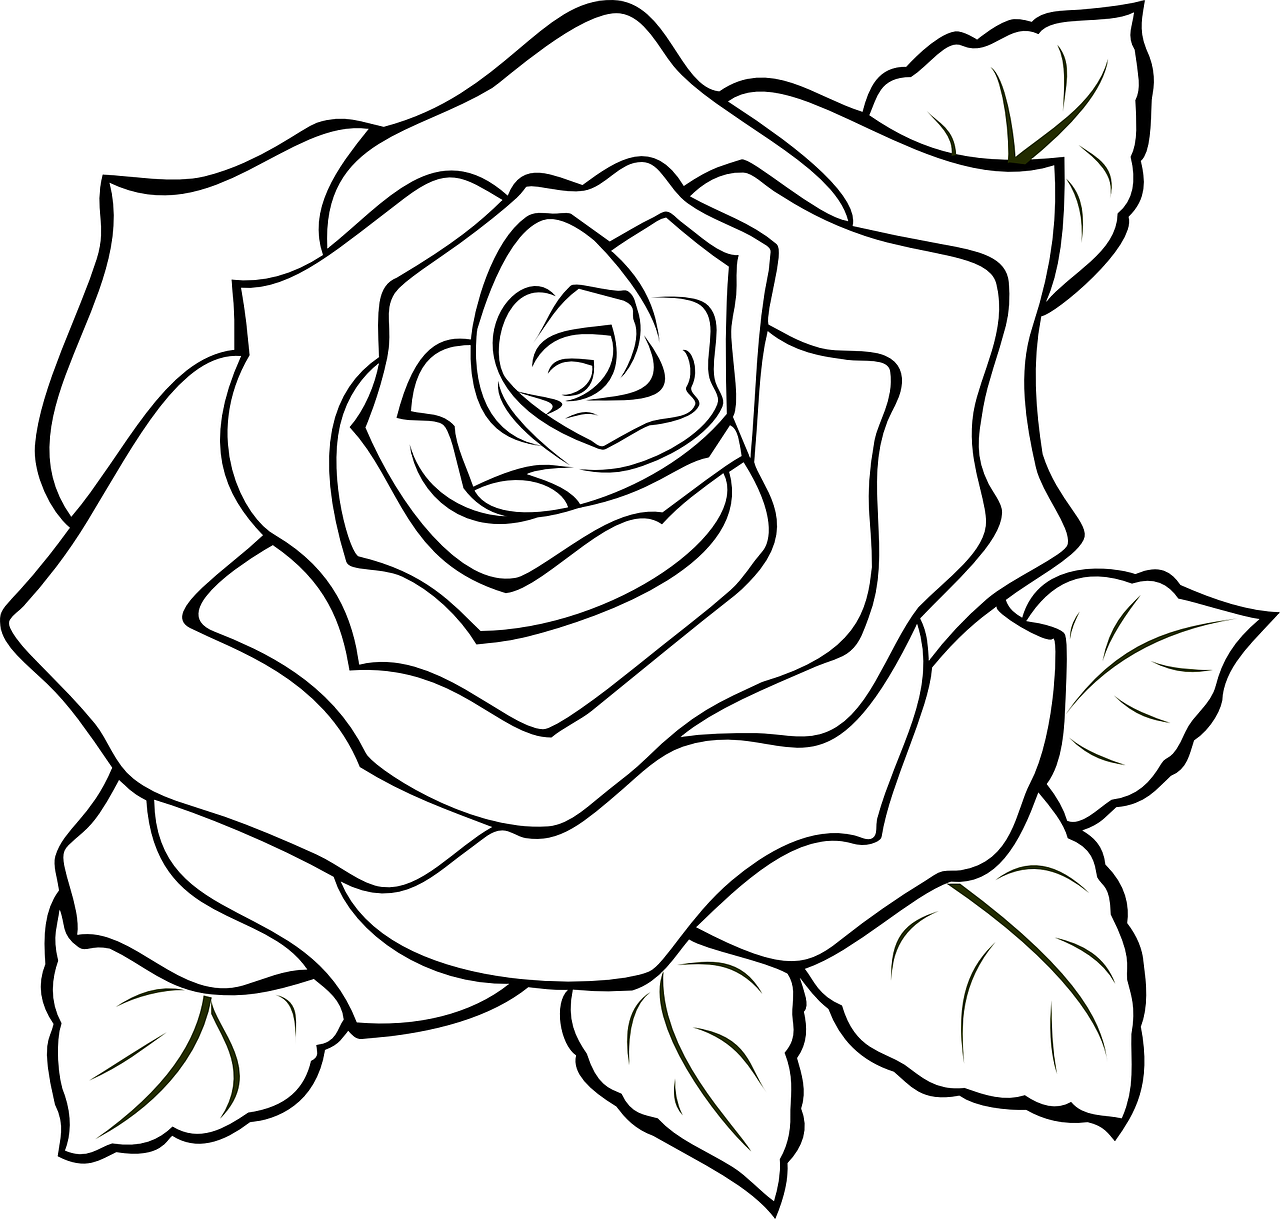 Bookmark drawing rose. How to make of